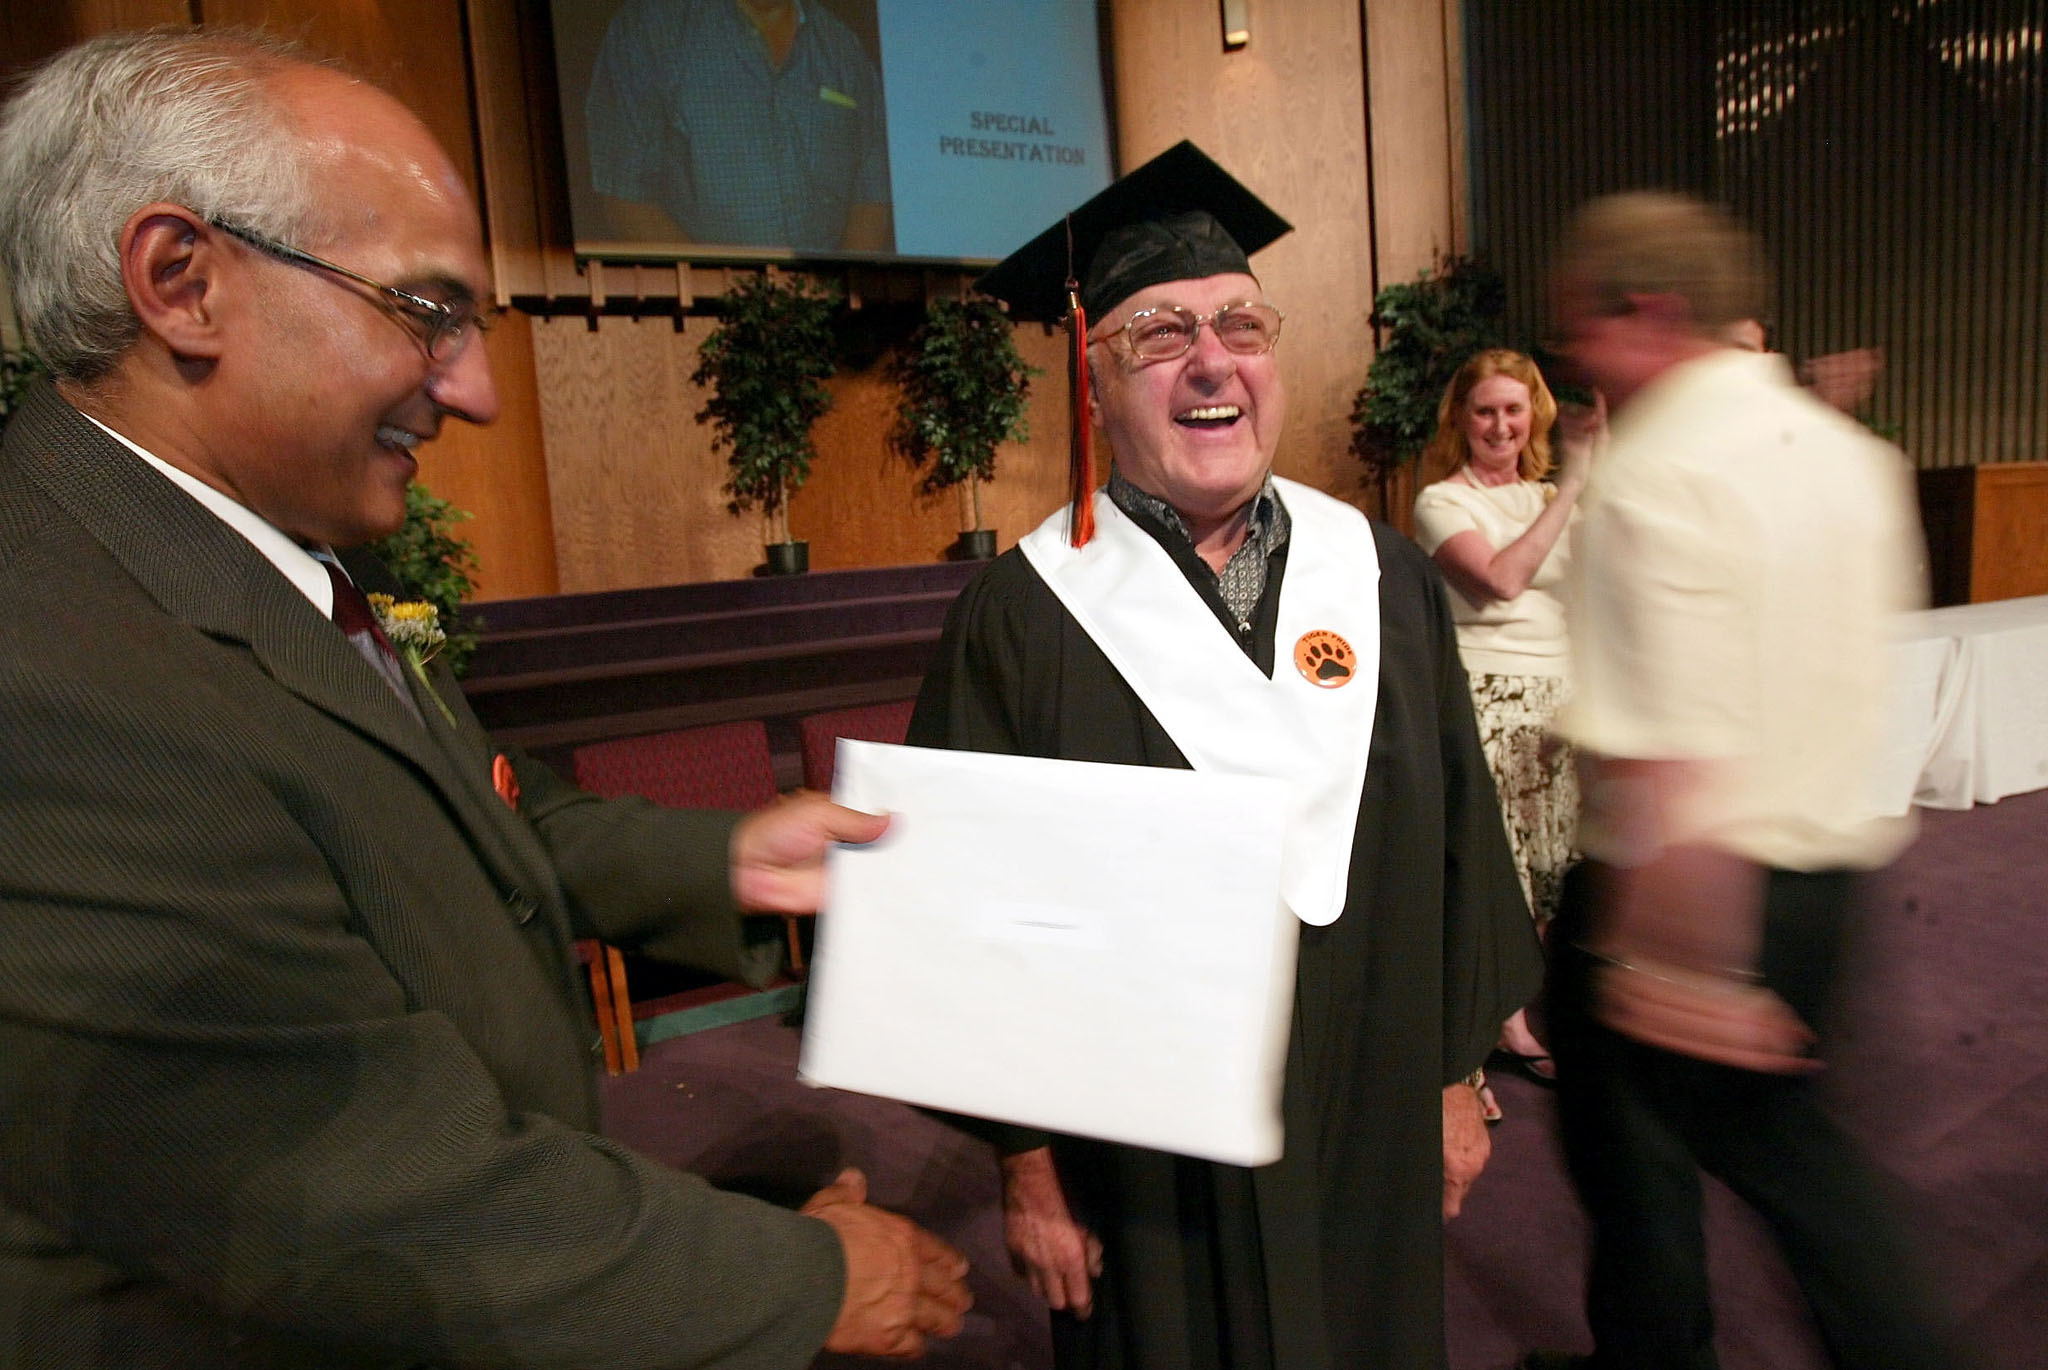 Dushant Persaud (left) surprises Barney Charach with his own diploma during a St. John's High School ceremony in 2004.